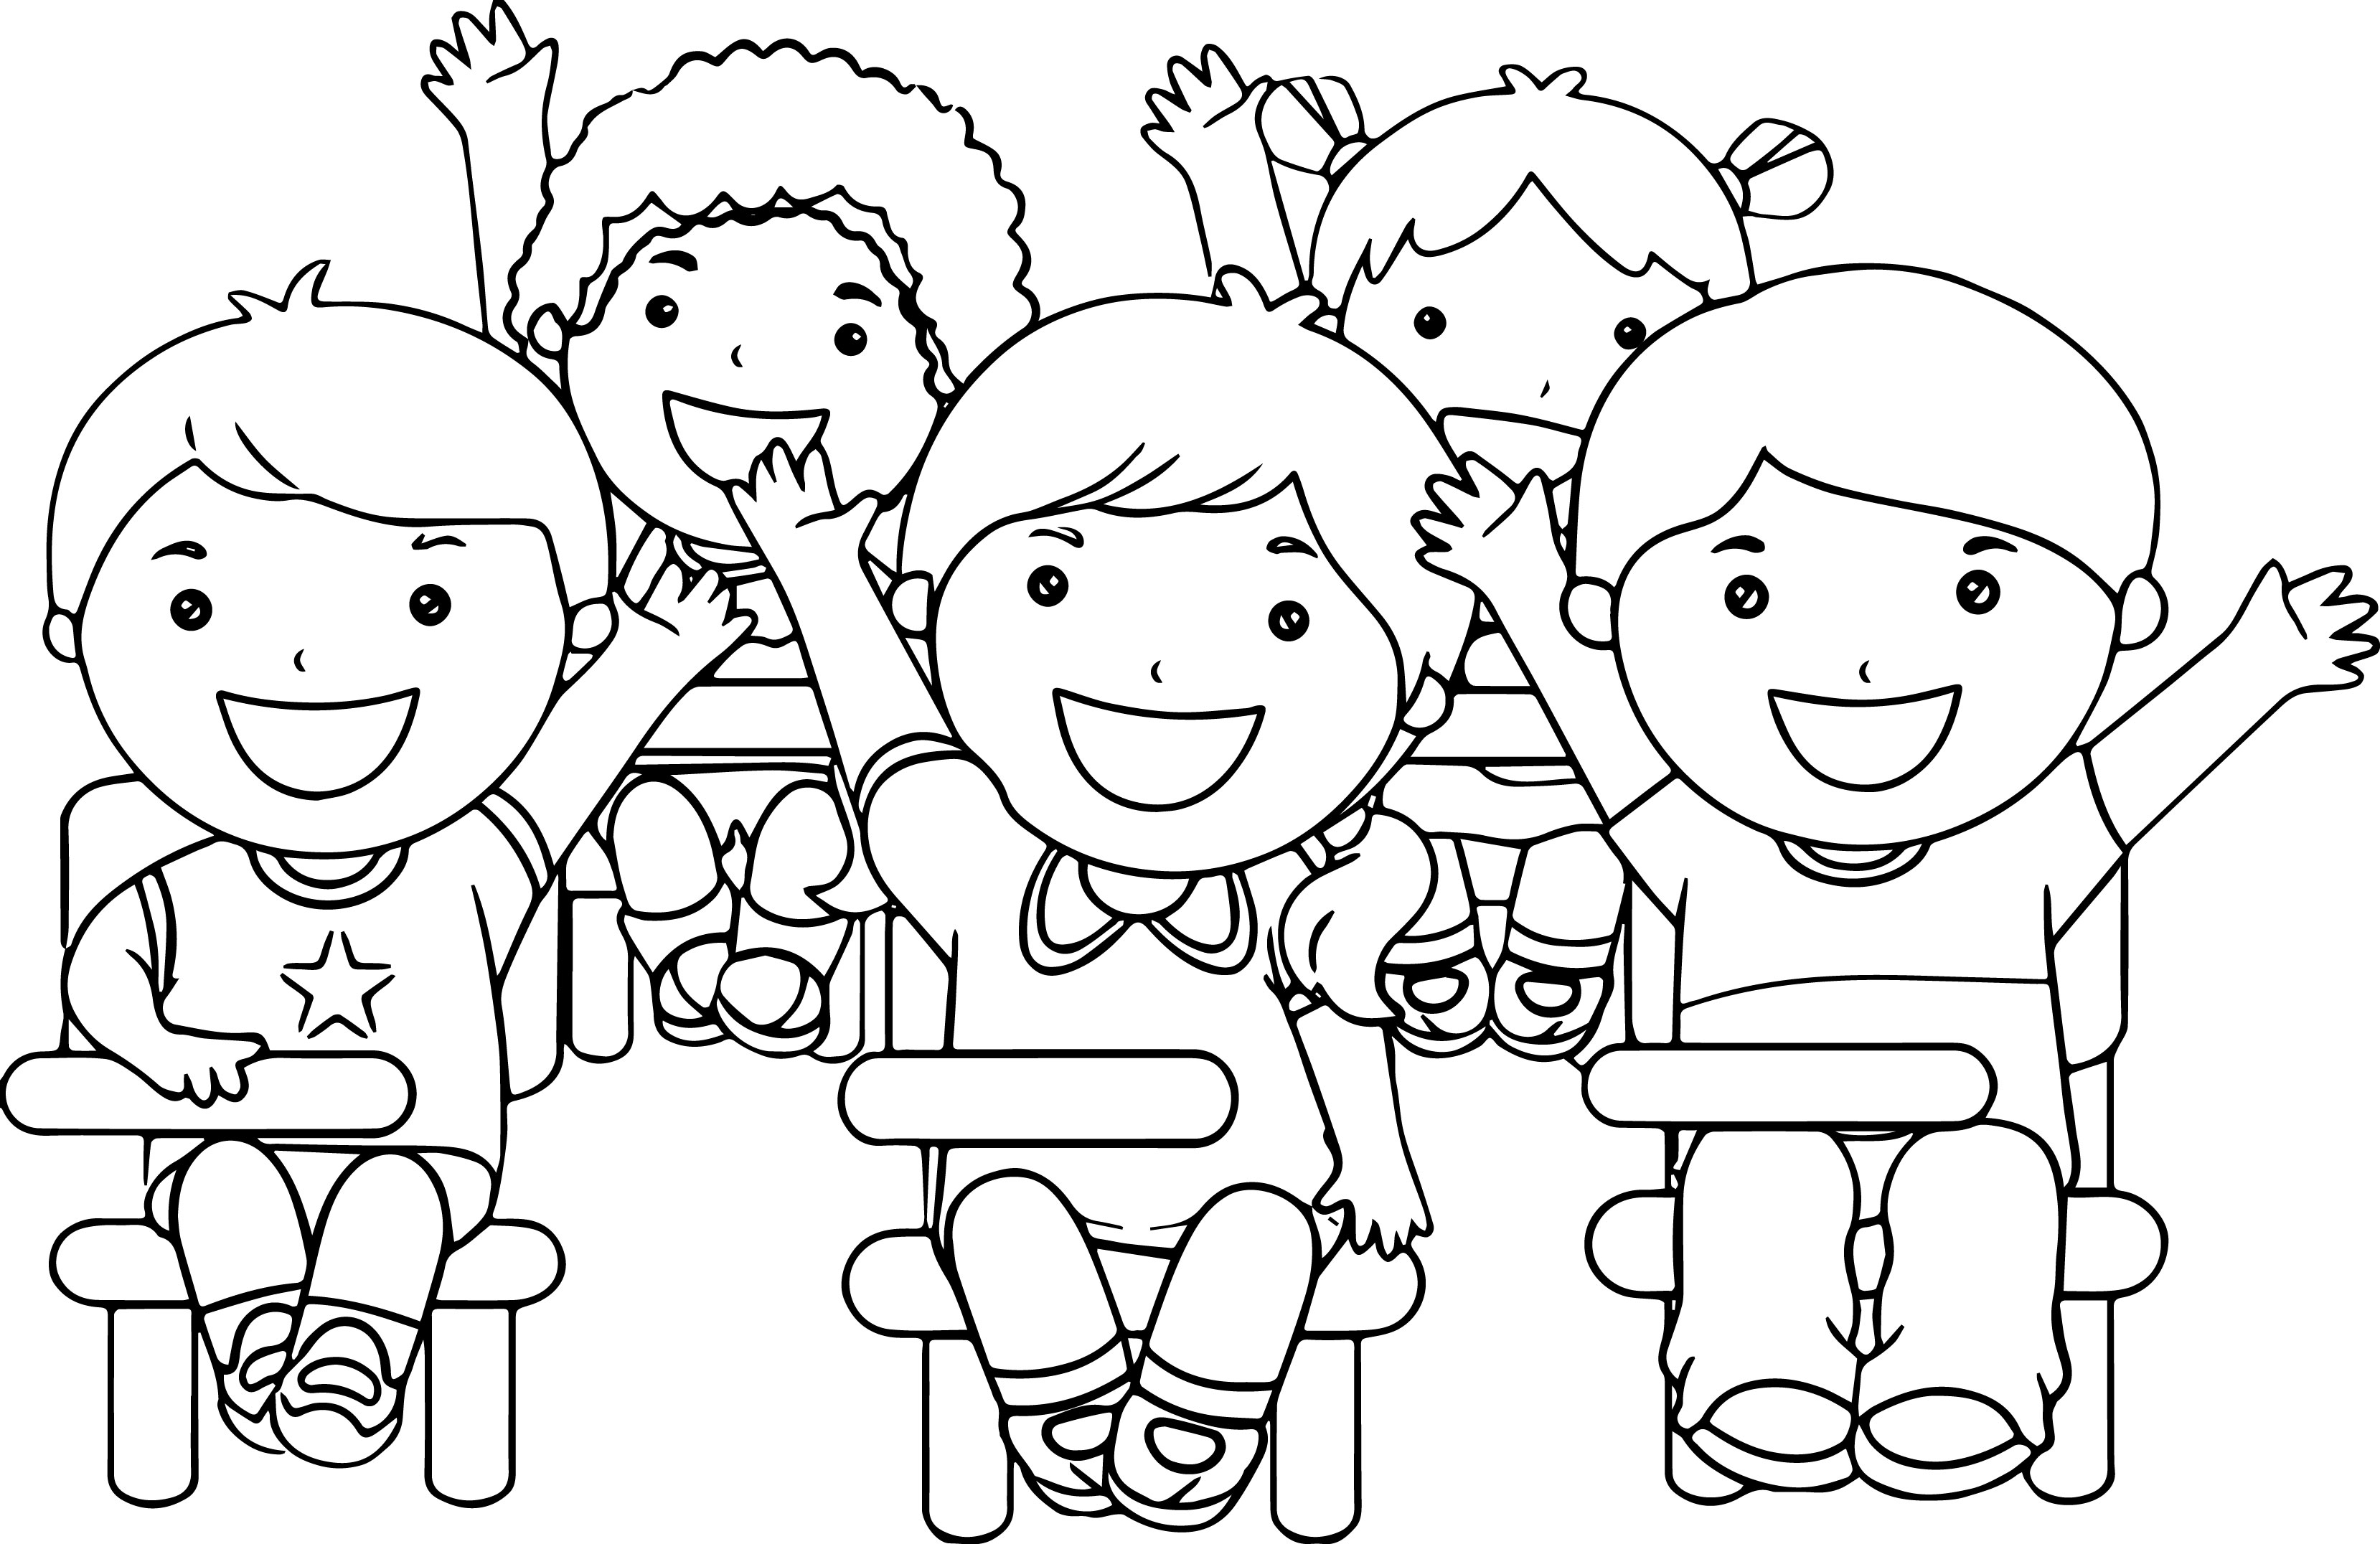 School Coloring Pages Coloring Pages Printable Coloring Sheets For Back To Schoolback